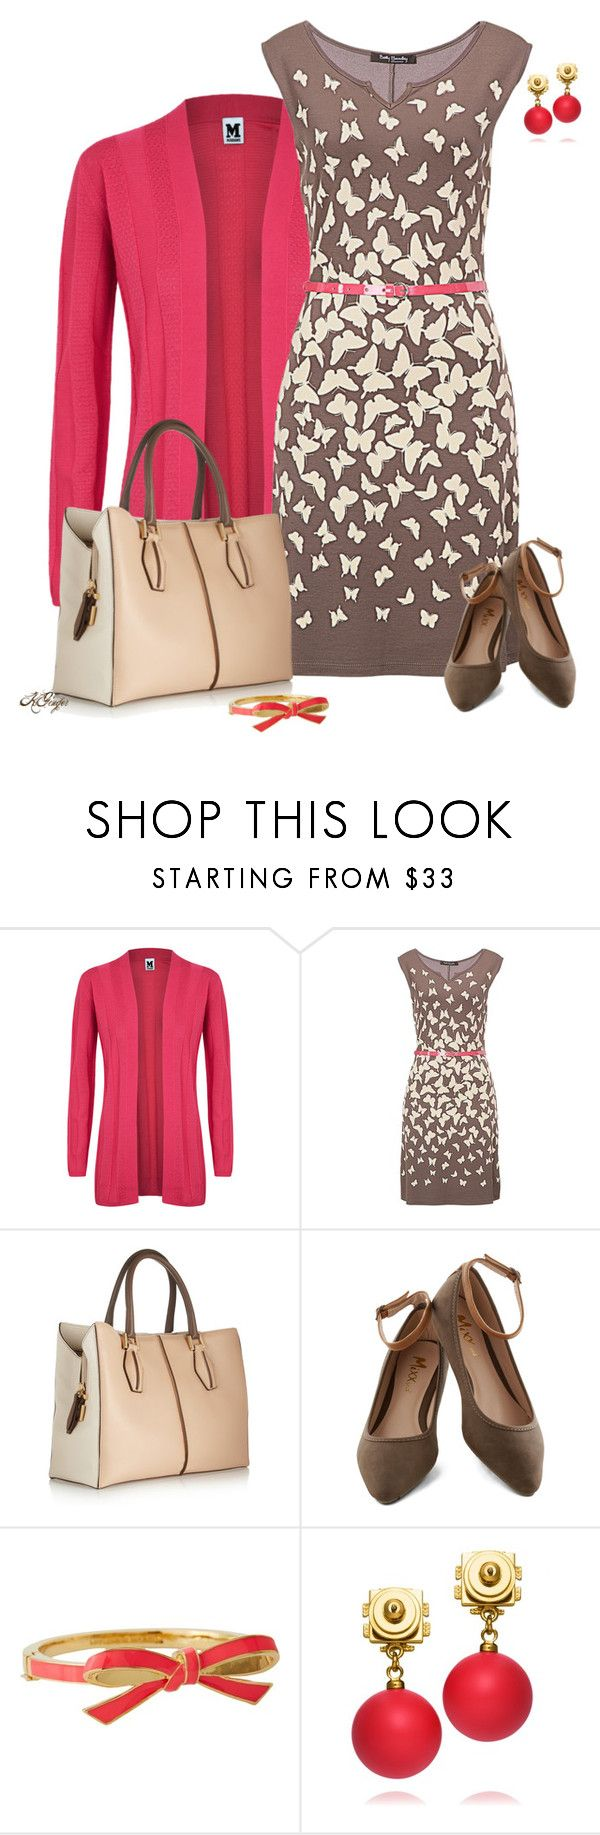 """""""Butterfly Dress Contest"""" by kginger ❤ liked on Polyvore featuring M Missoni, Betty Barclay, Tod's, Kate Spade and Tory Burch"""